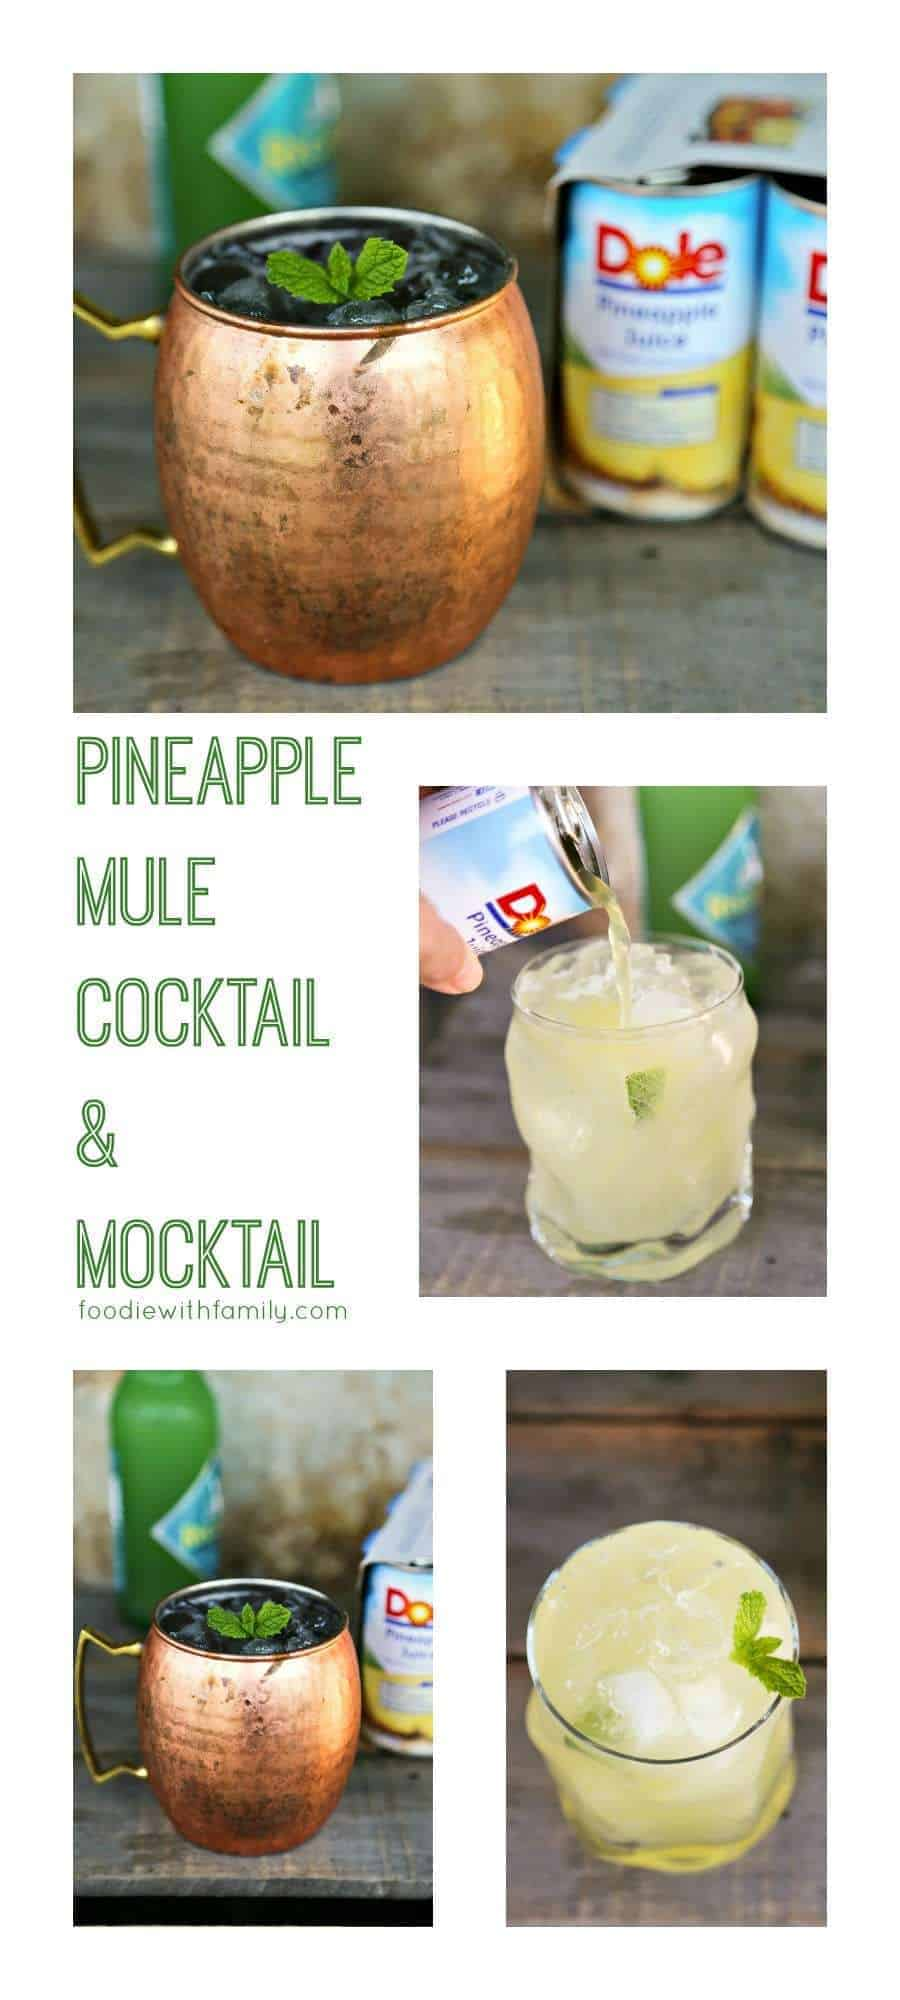 Pineapple Mule Cocktail and Mocktail to please them all